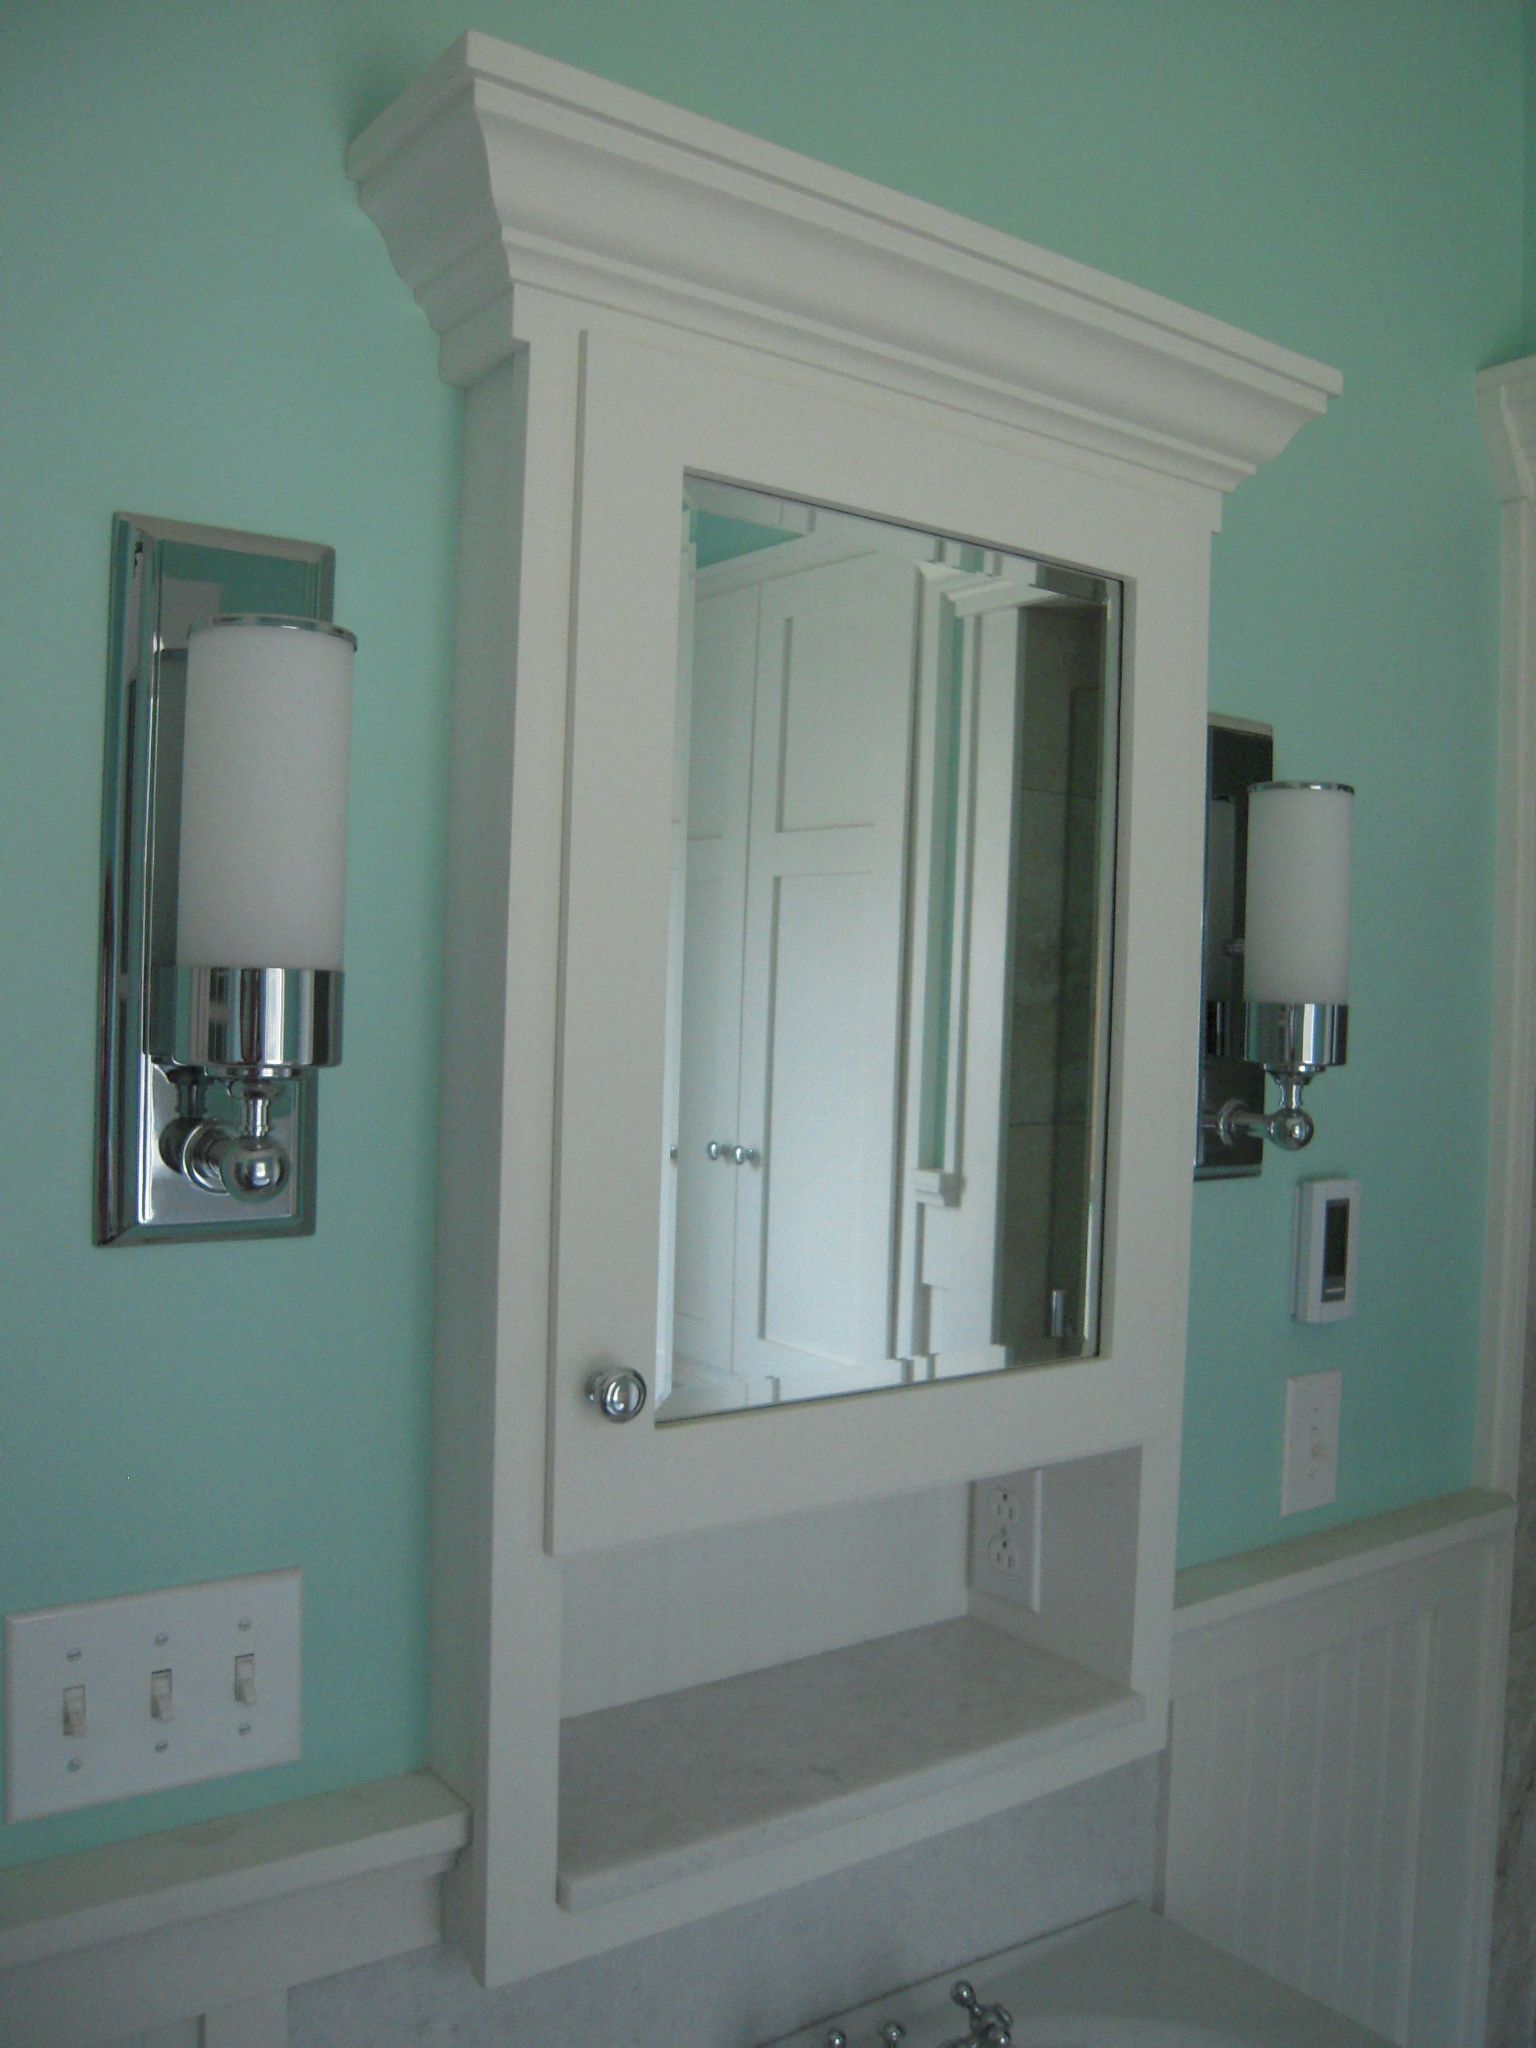 Recessed Medicine Cabinet And White Wooden Panel Half Wall With Modern Sconce In Wonderful Bathroom Design Plus Turquoise Paint